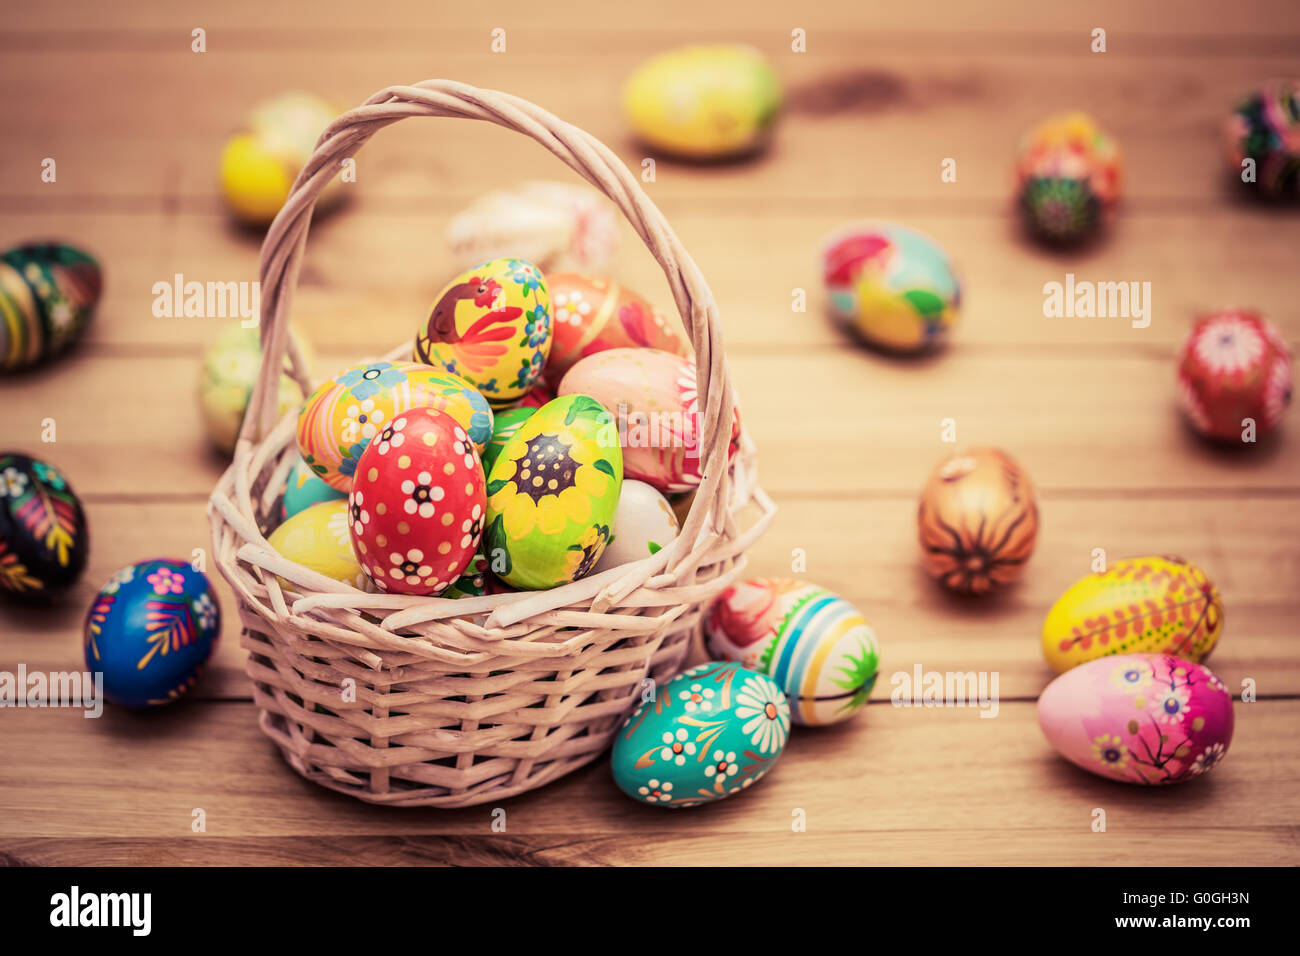 Colorful hand painted Easter eggs in basket and on wood. Handmade vintage decoration - Stock Image